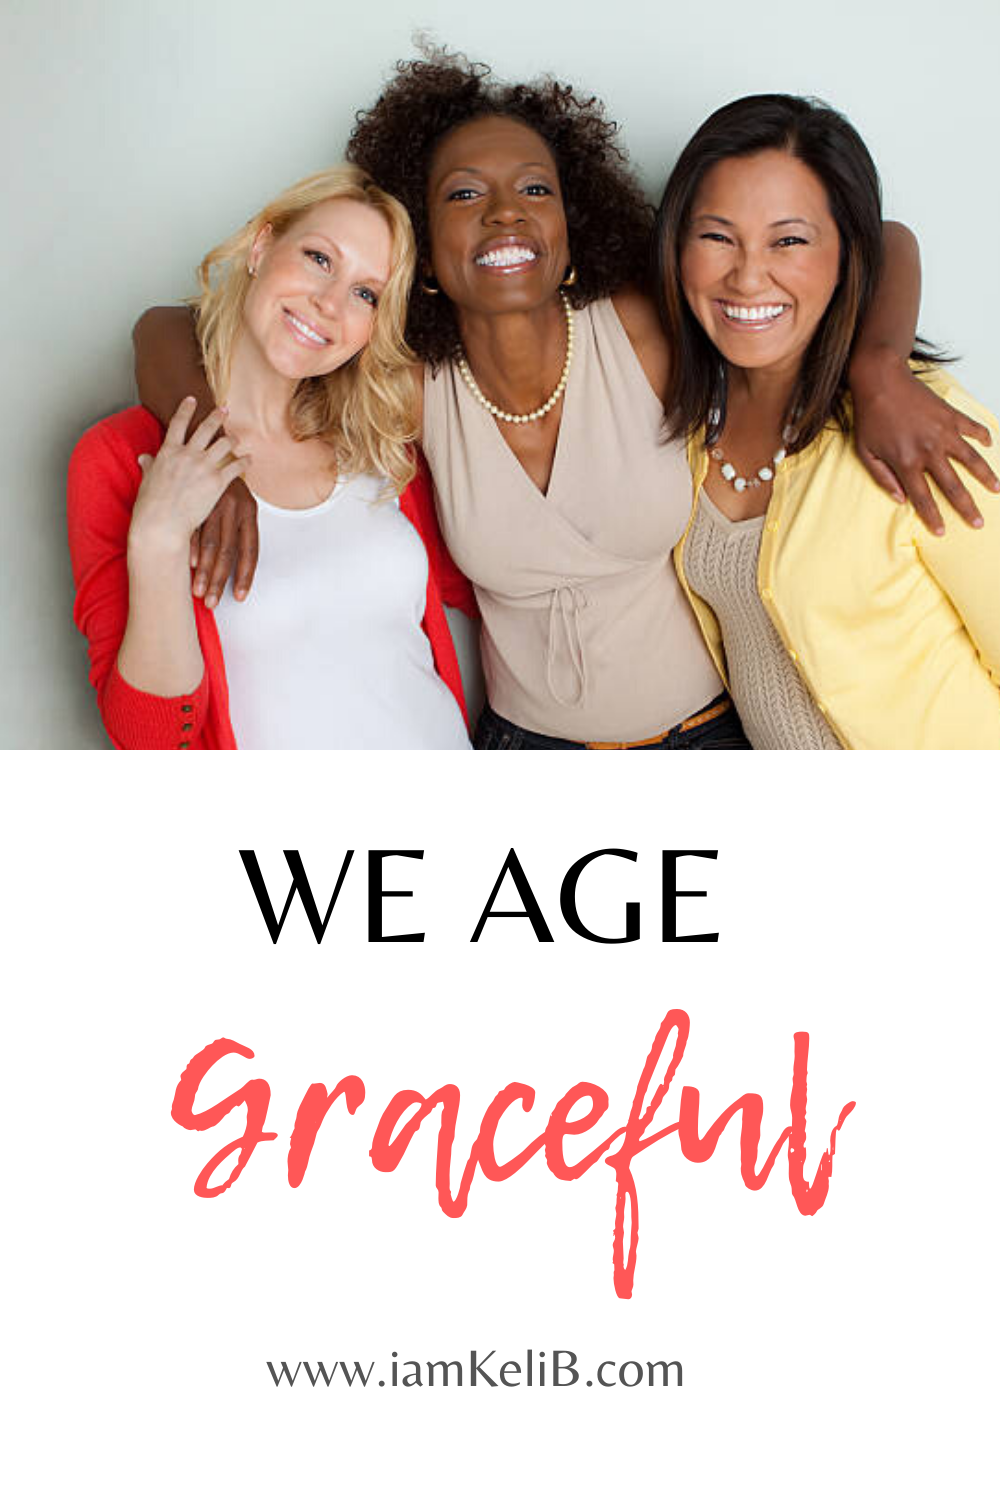 WE AGE GRACEFUL